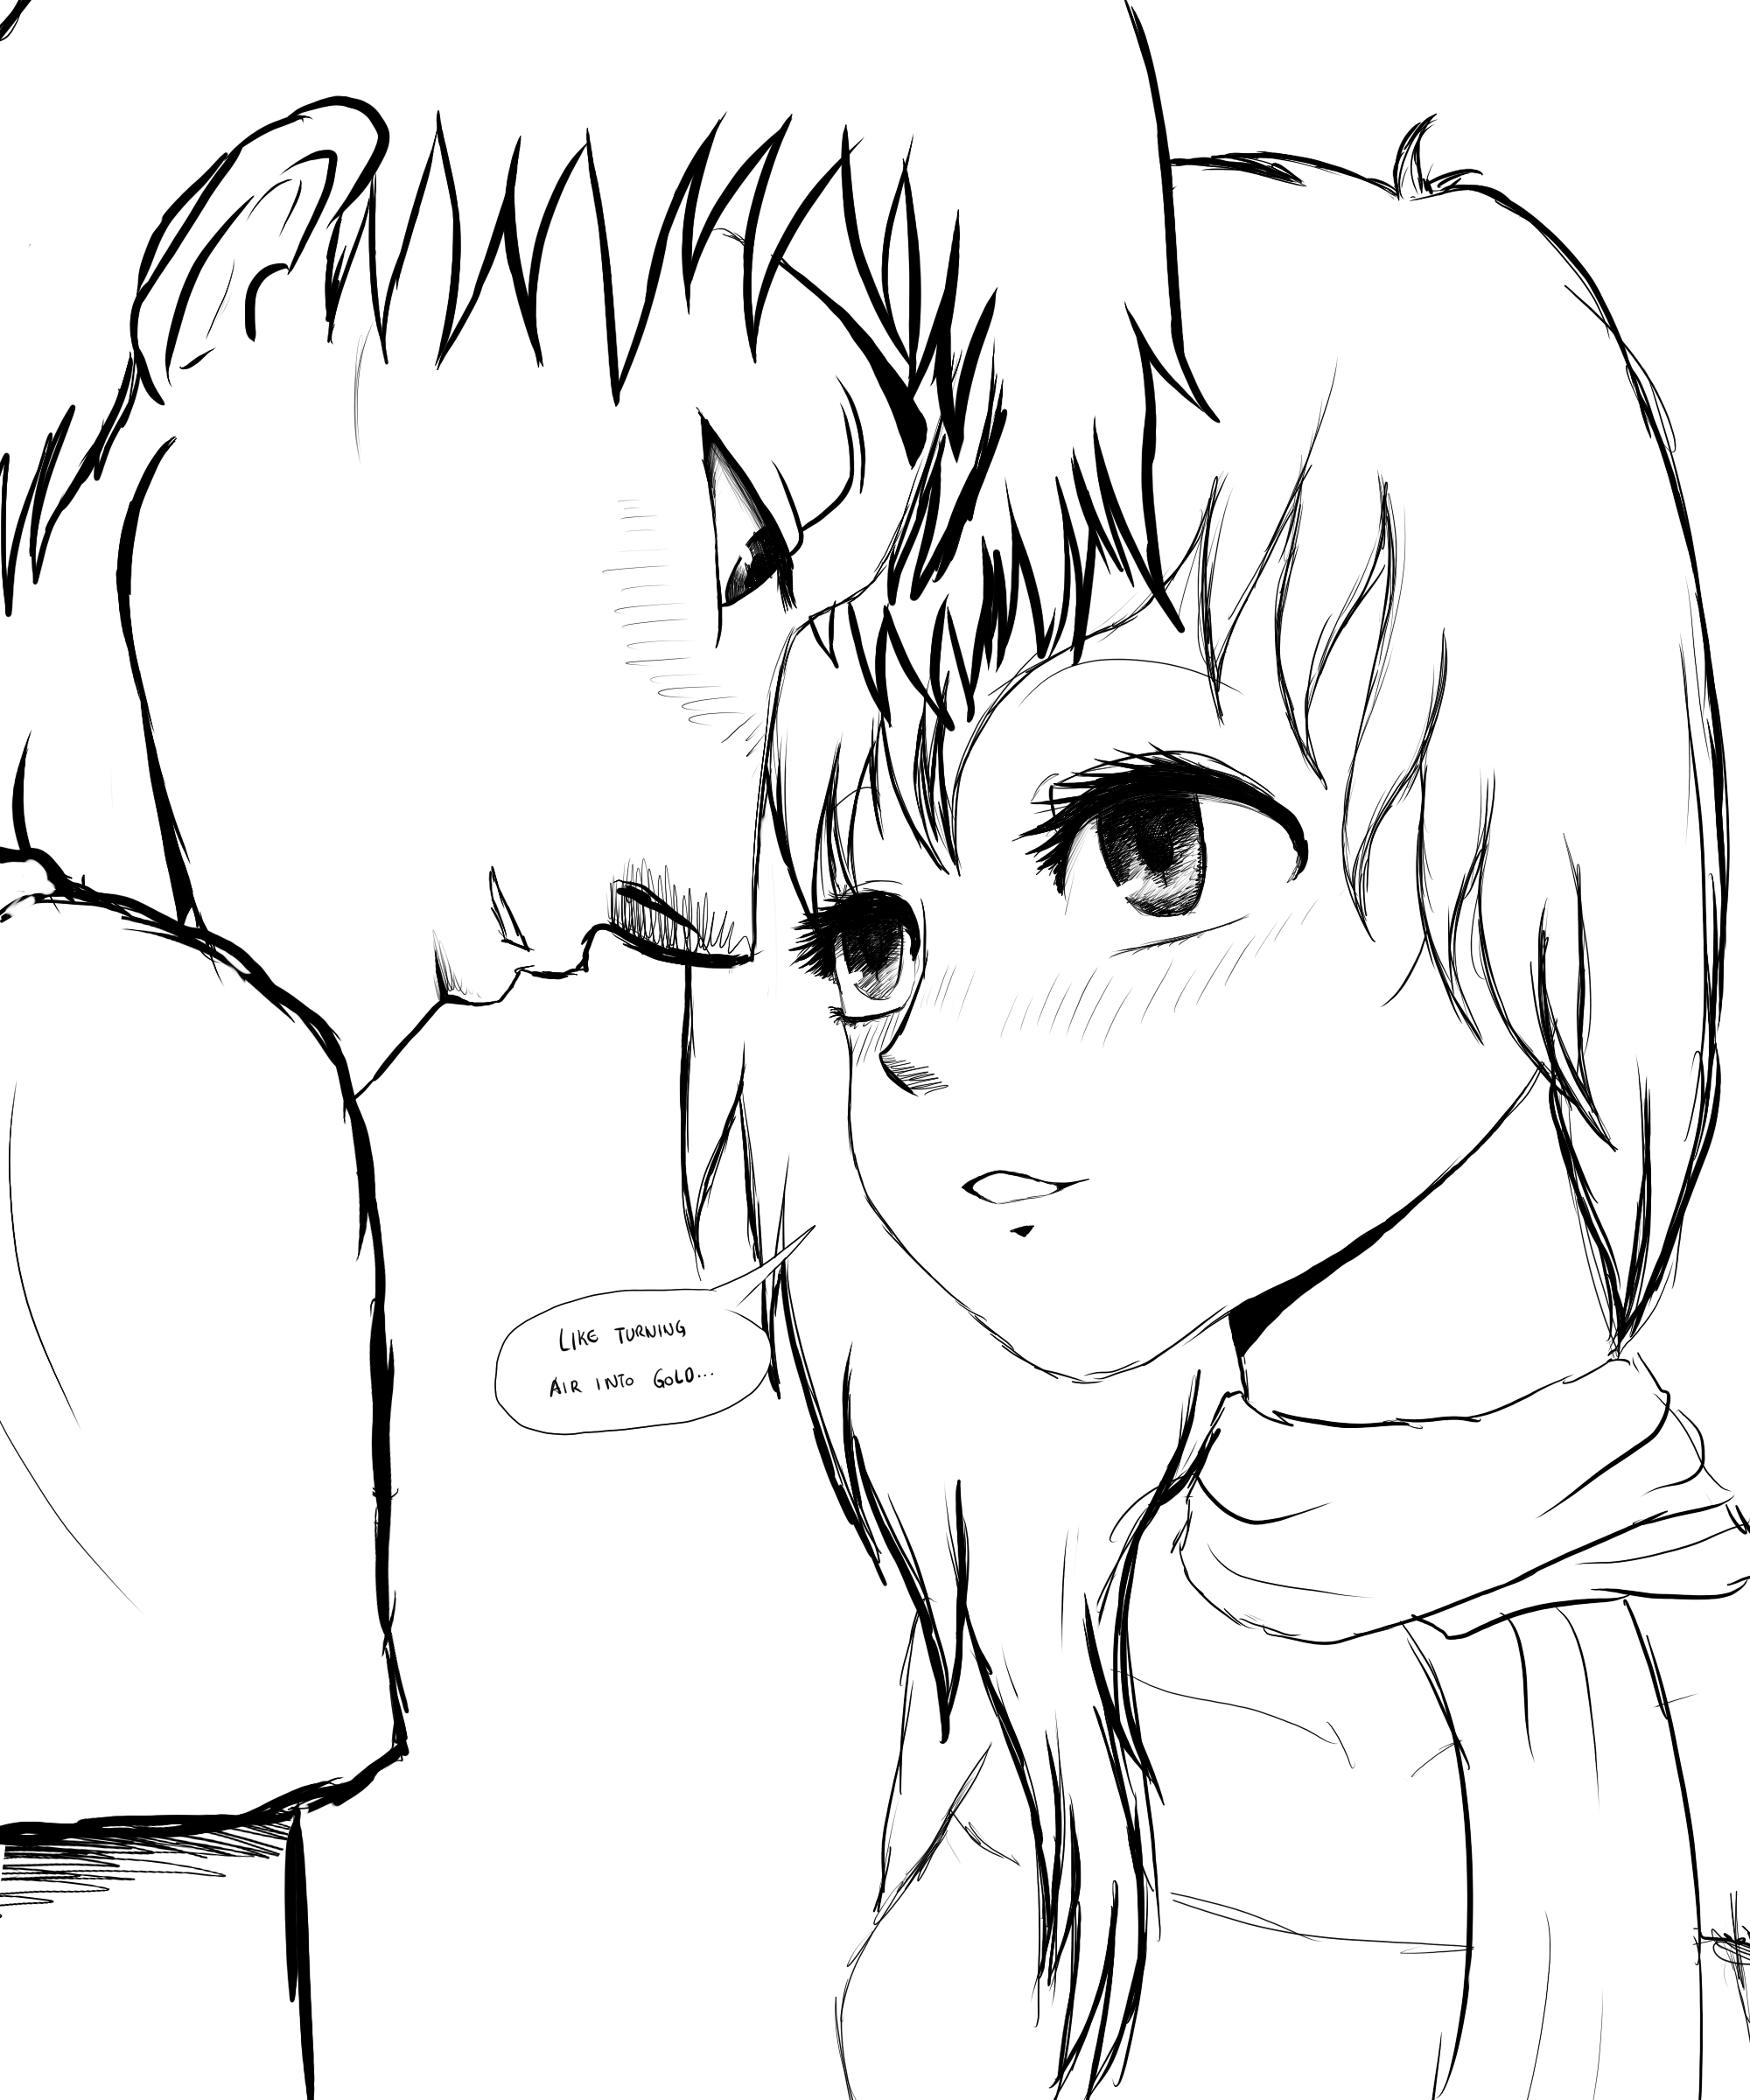 Wade And Luna (OC Manga Couple SKETCH) By SylunaHirokashi On DeviantArt